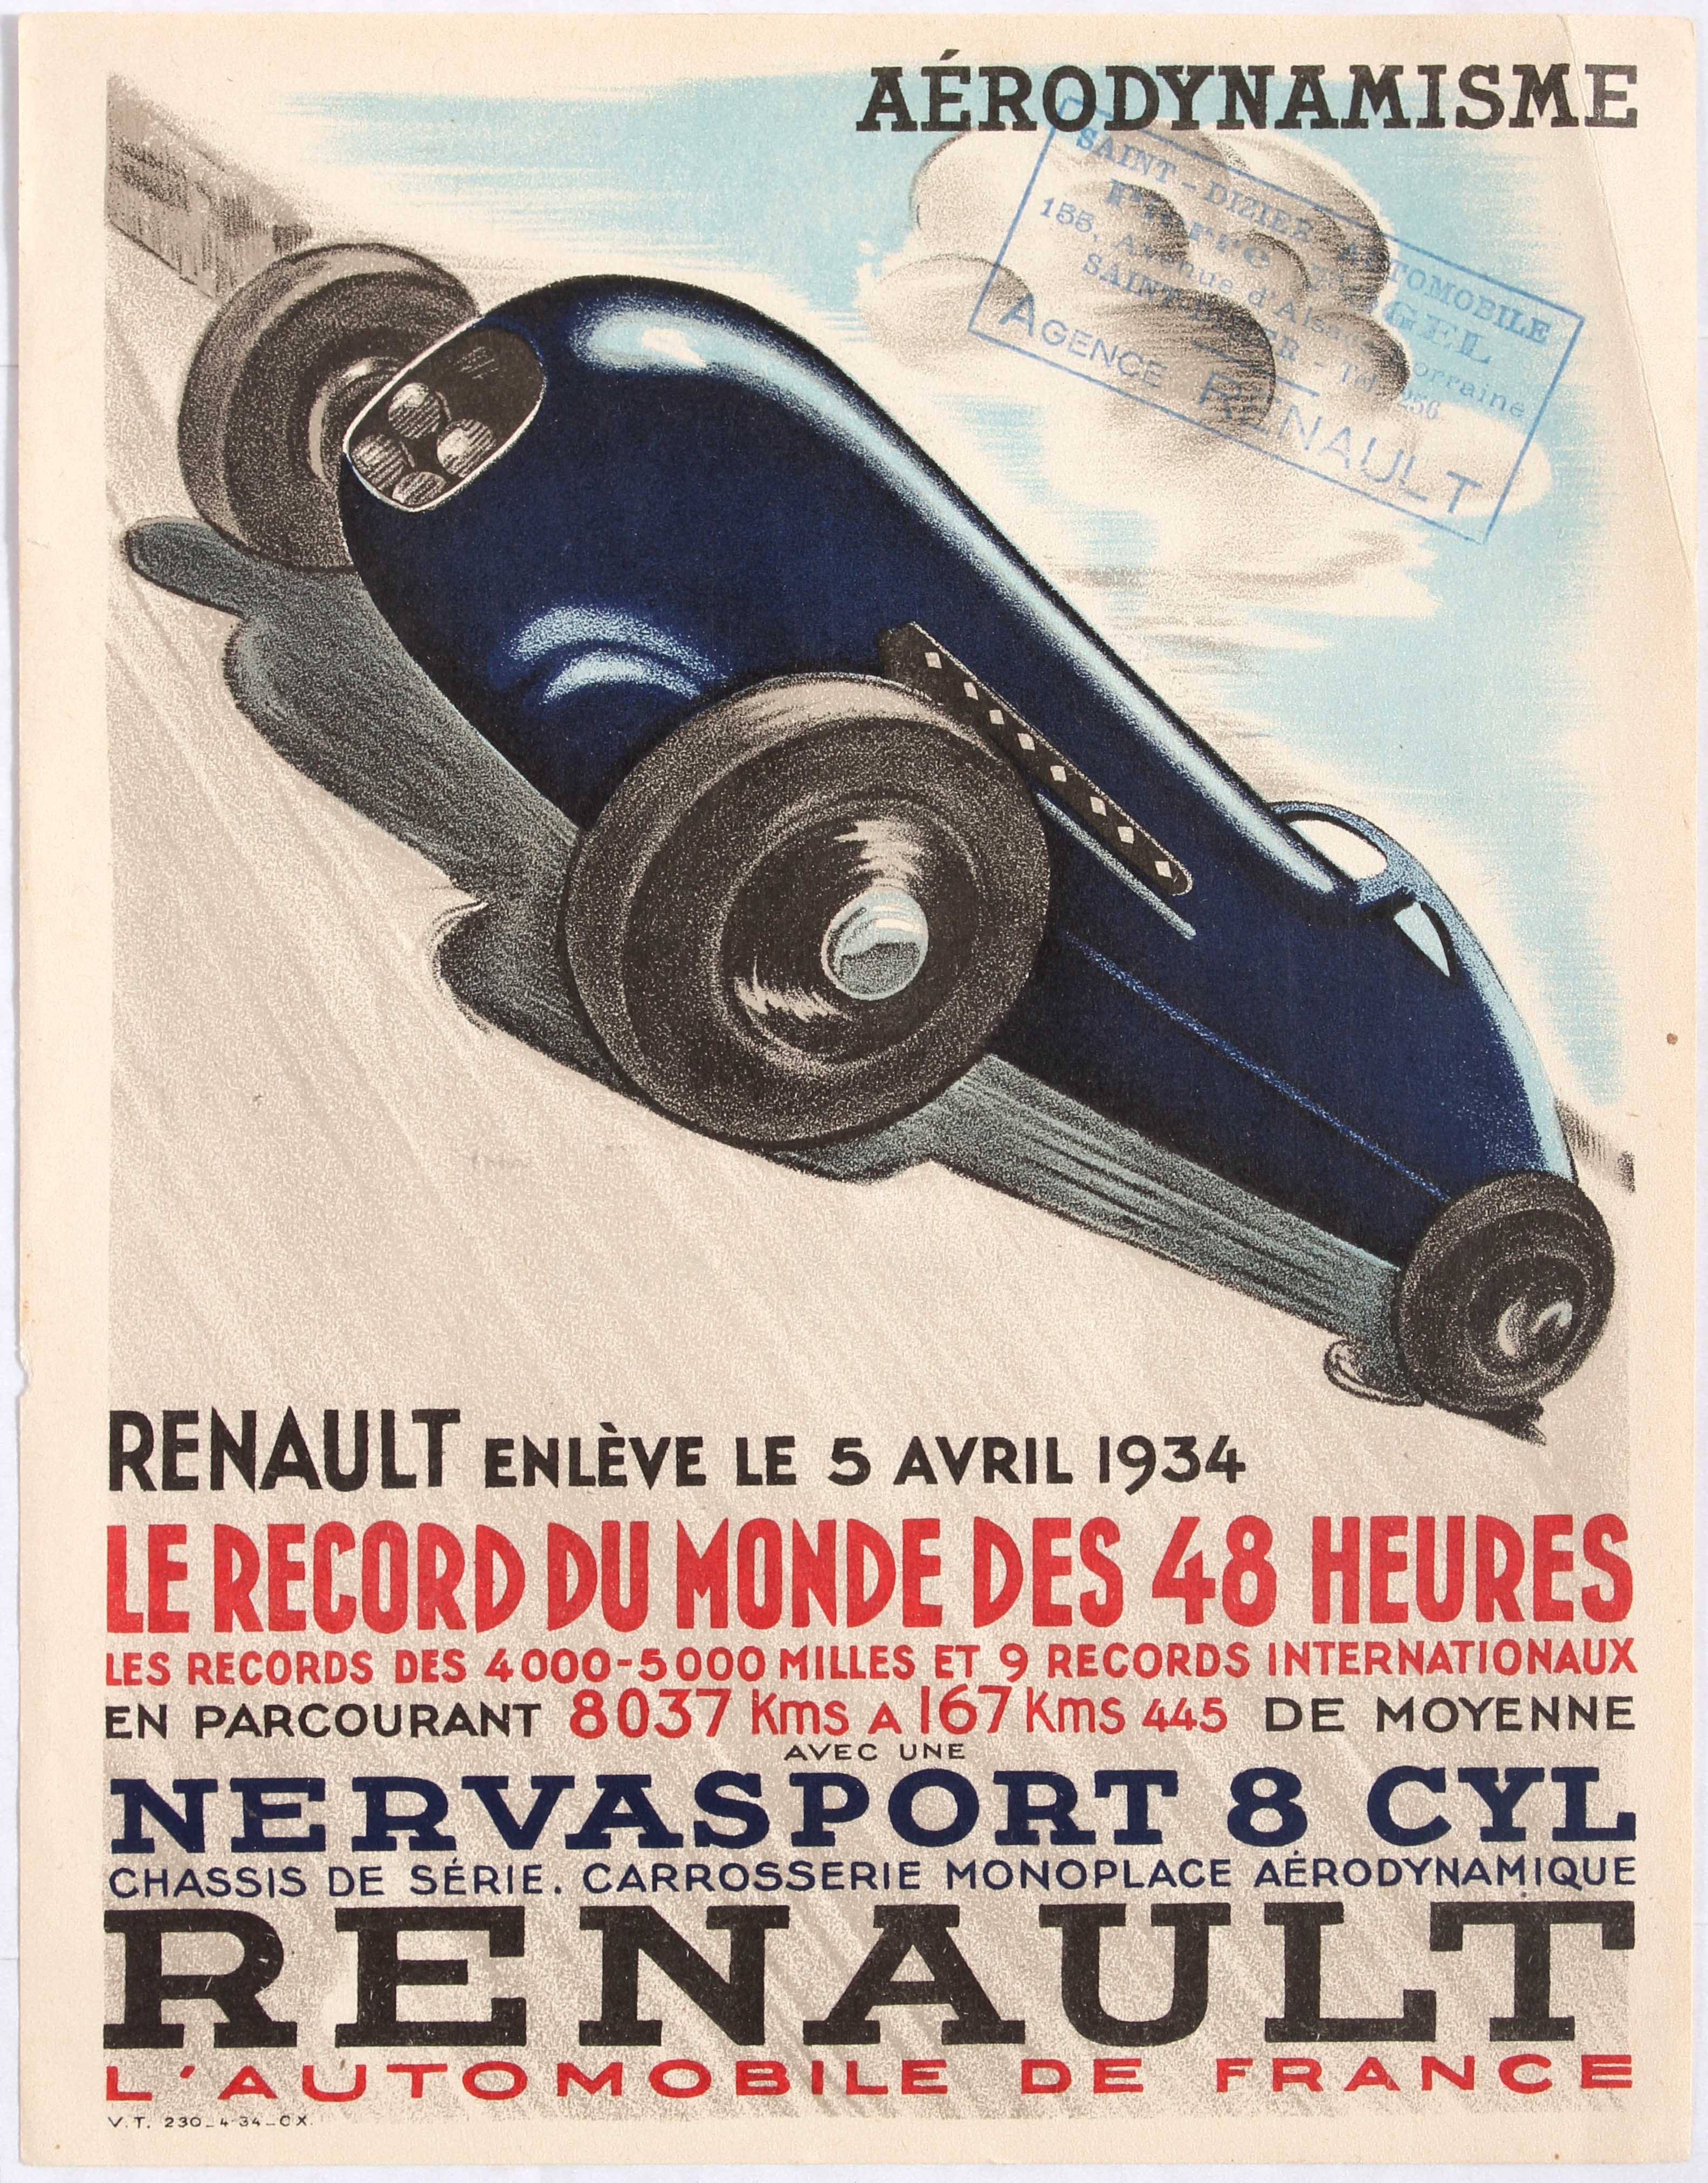 Advertising Poster for Renault Renault takes the 48 hours World Record.